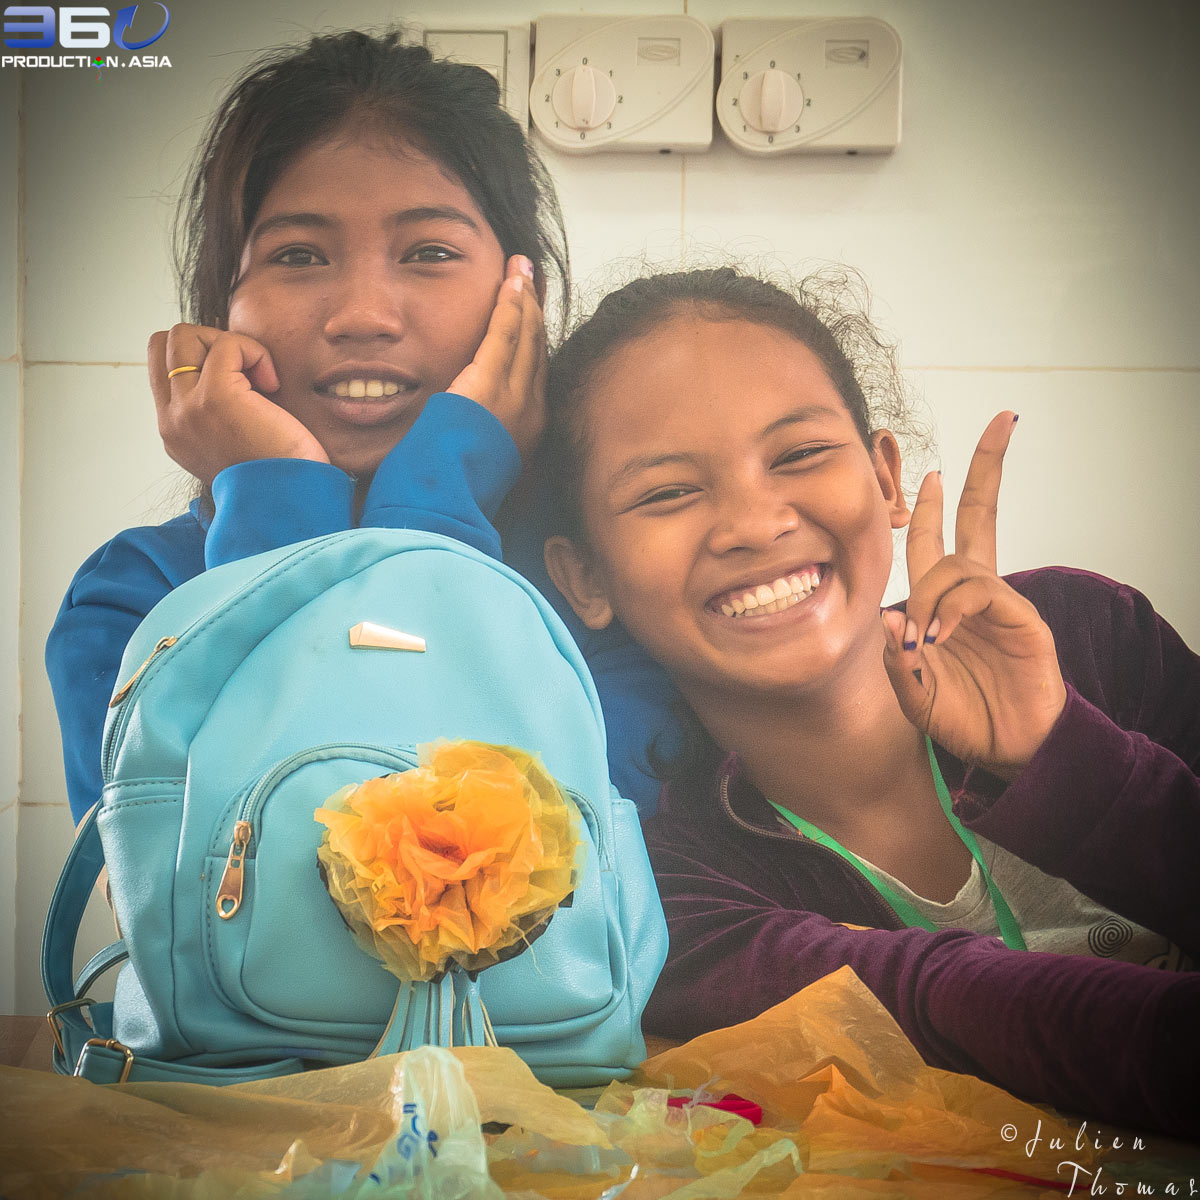 Khmer schoolgirls have hooked a crafted flower made from recycled plastic bags on a school bag during a ecological and creative children's course in Phnom Penh.